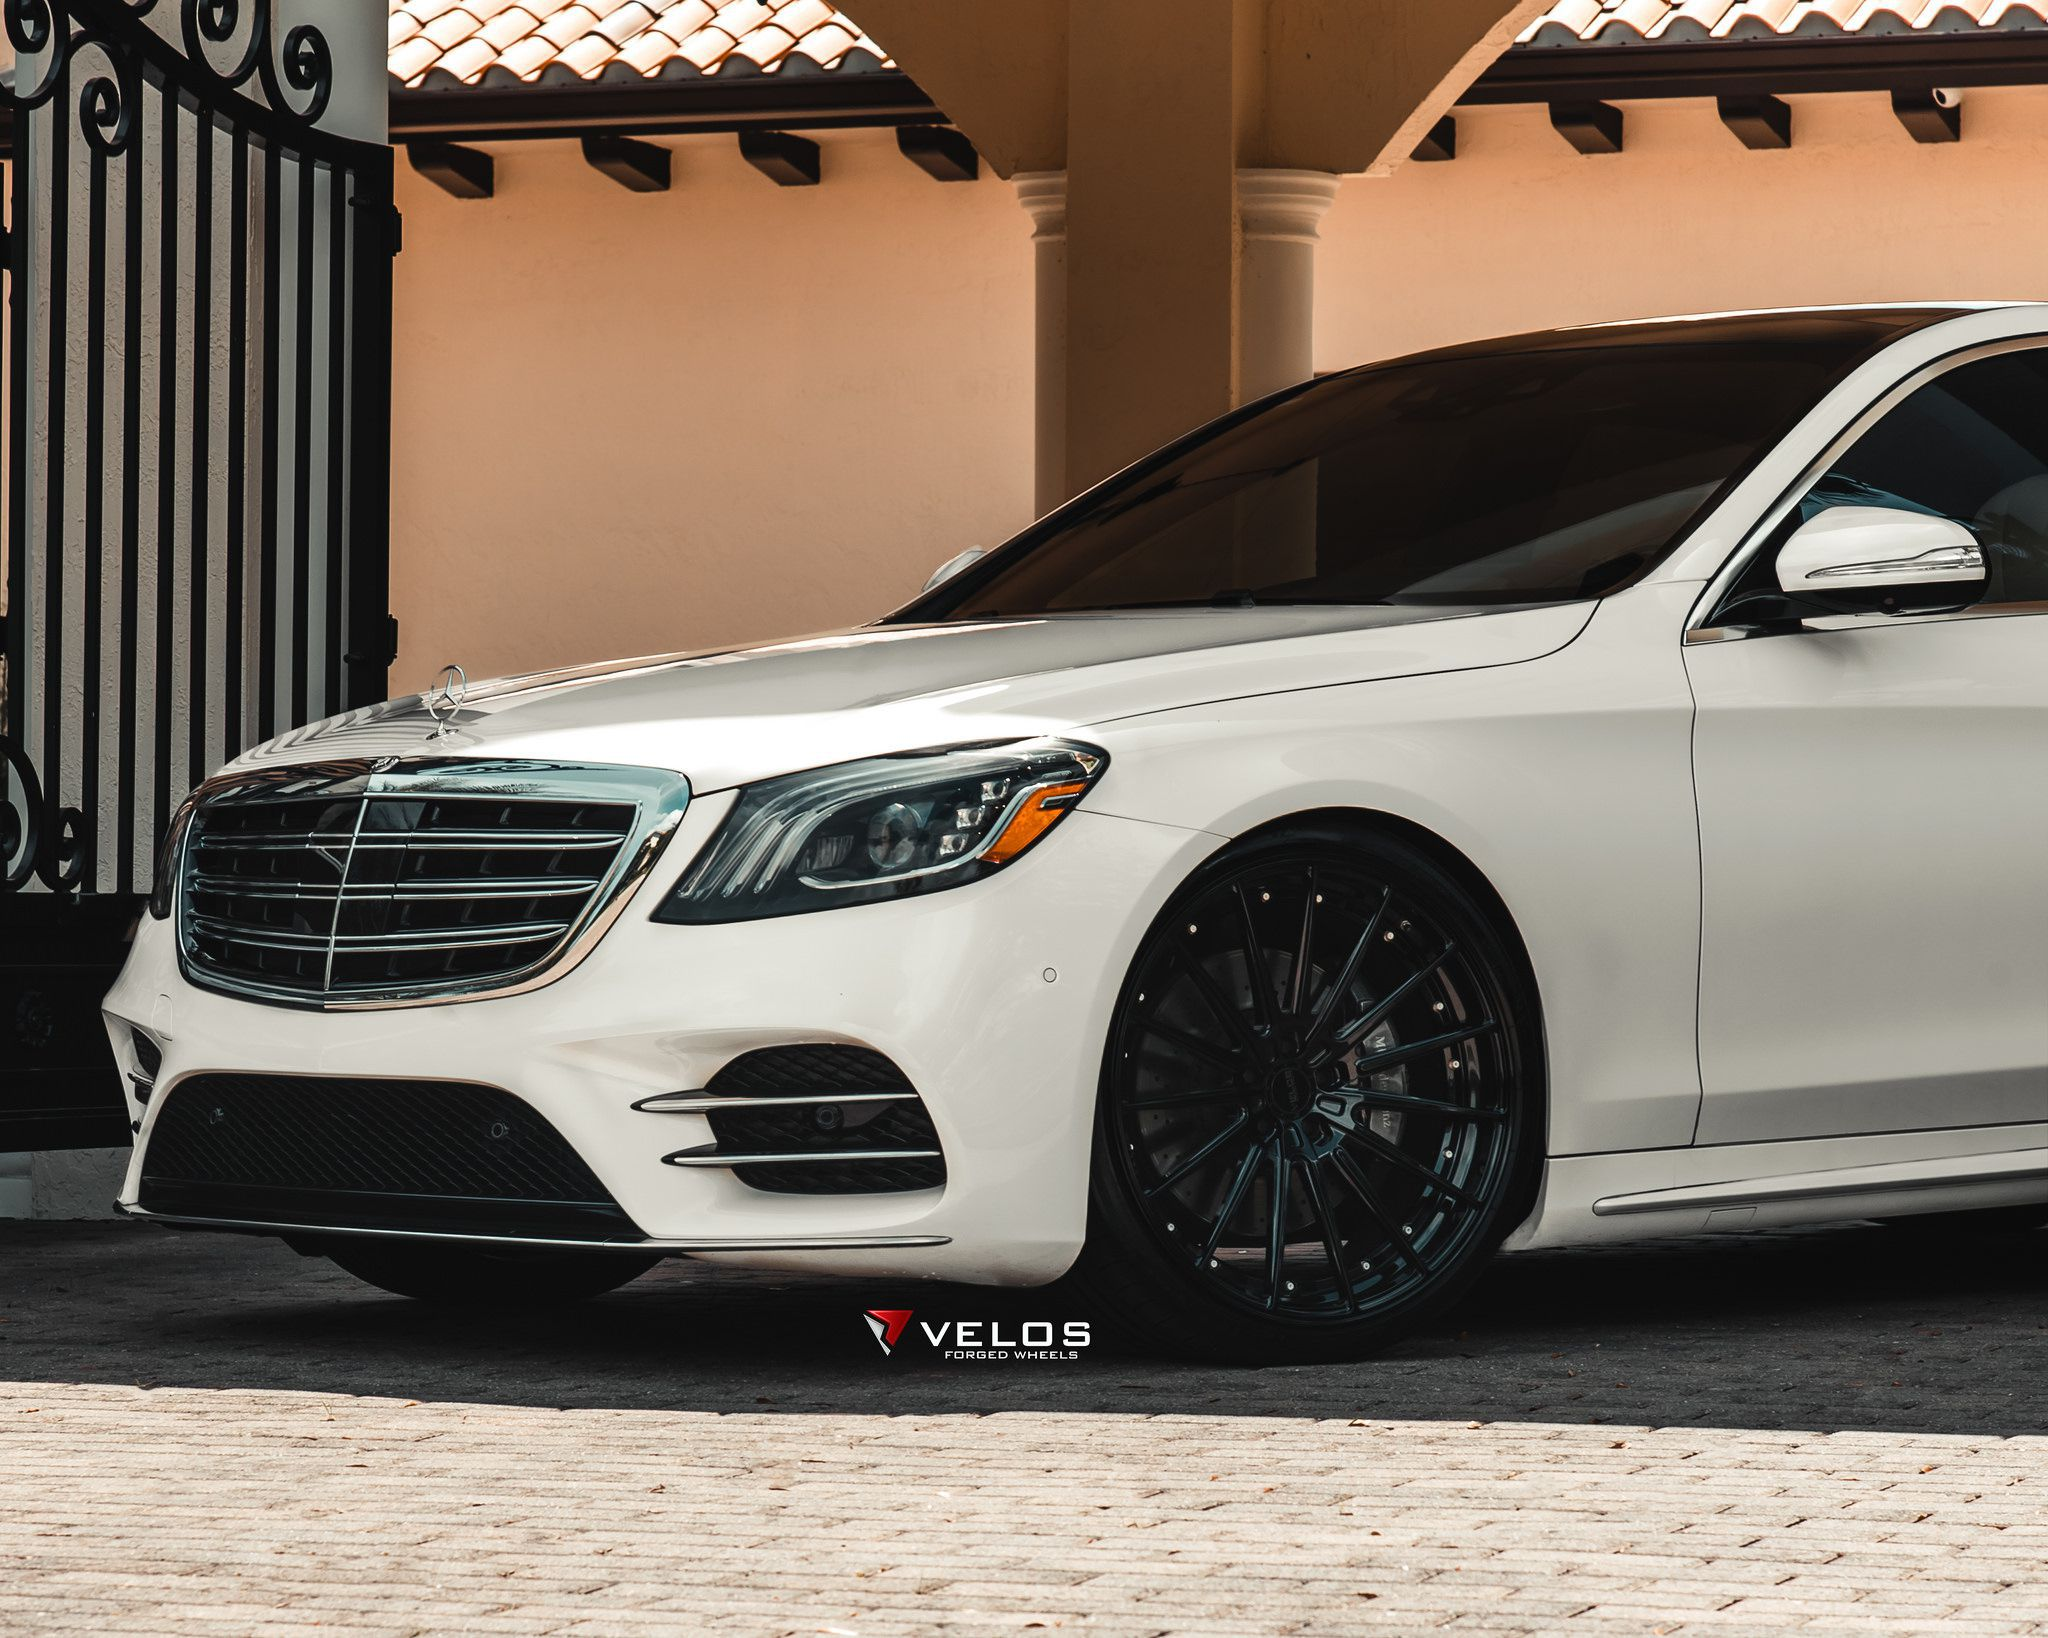 02 white Mercedes Benz S Class S 450 Sedan 4matic 2018